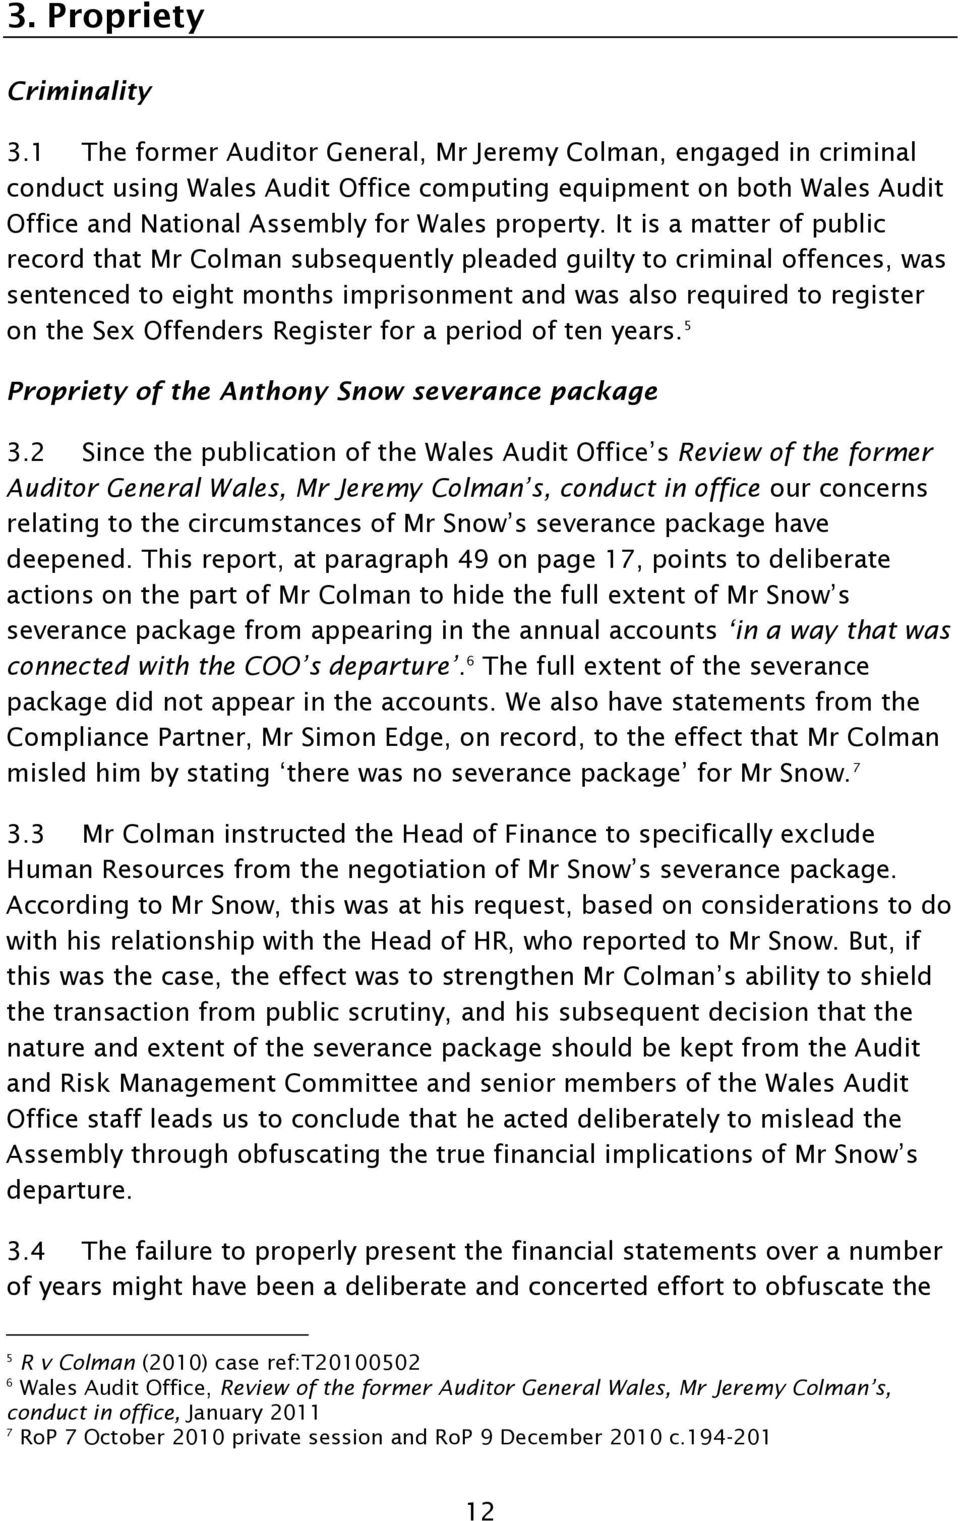 It is a matter of public record that Mr Colman subsequently pleaded guilty to criminal offences, was sentenced to eight months imprisonment and was also required to register on the Sex Offenders